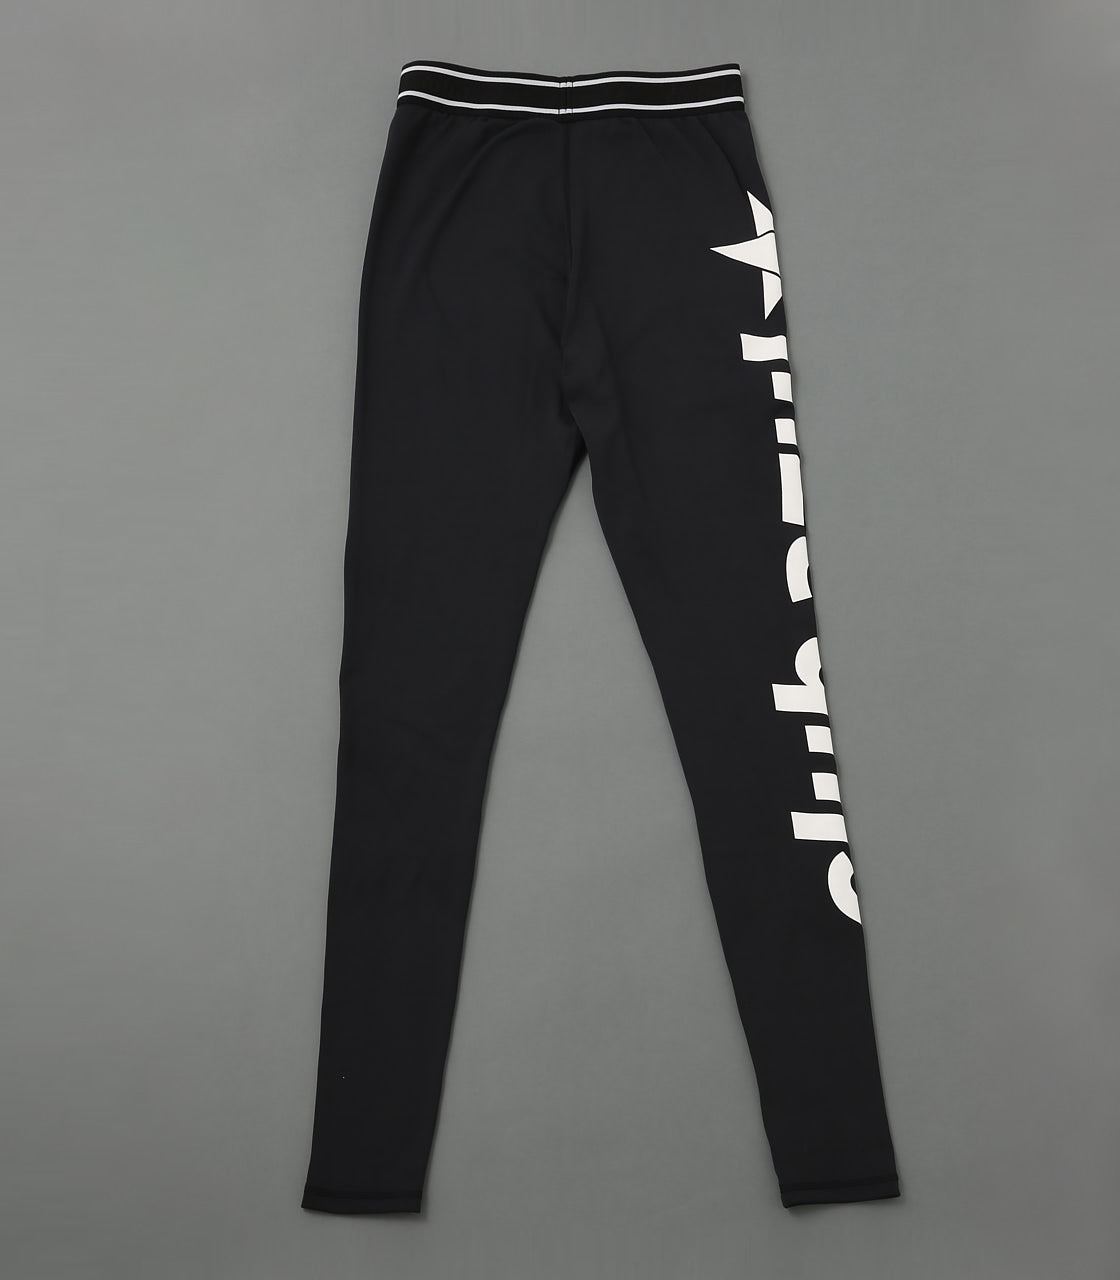 【AZUL BY MOUSSY】CLUB AZUL LOGO LEGGINGS 詳細画像 BLK 5